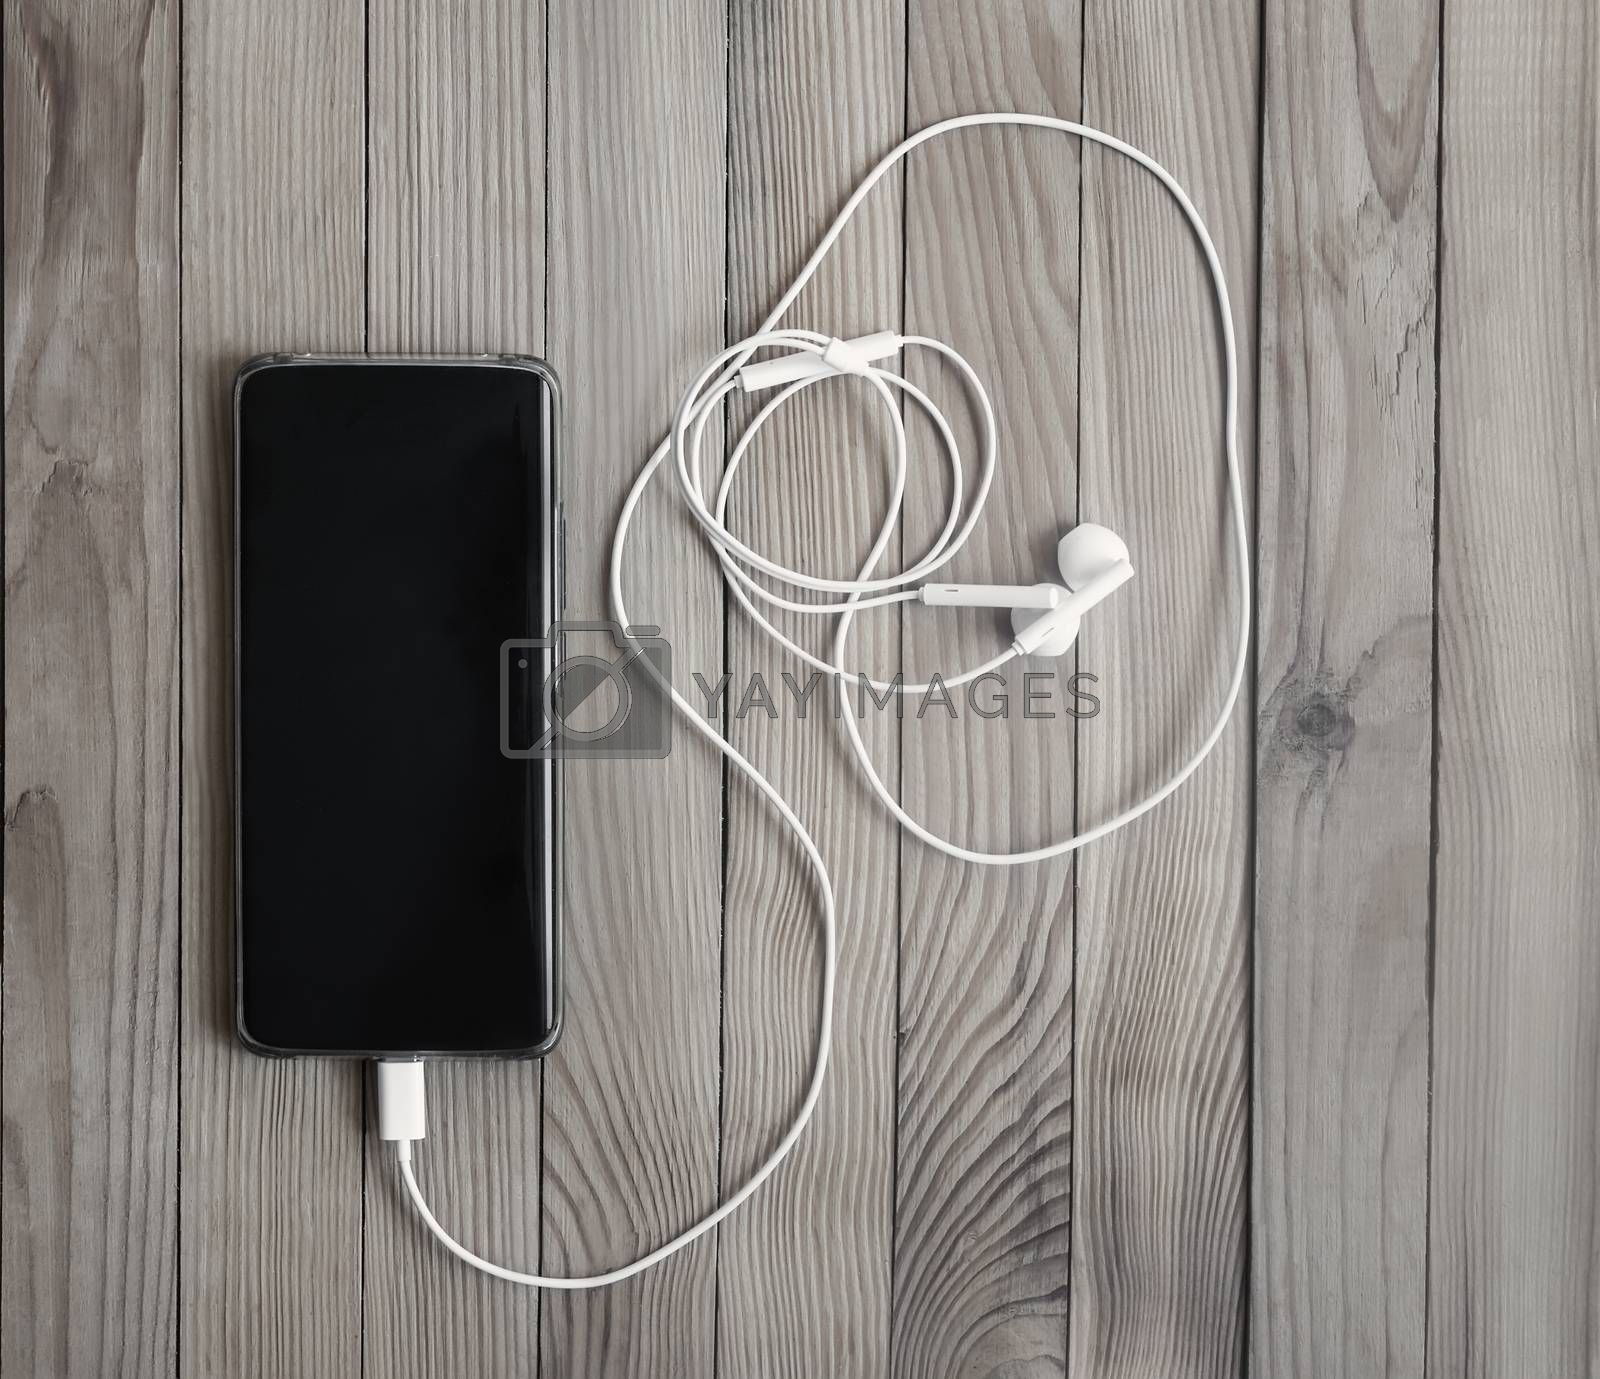 Modern smartphone and headphones on the background of a wooden table. Close-up, top view, copy space